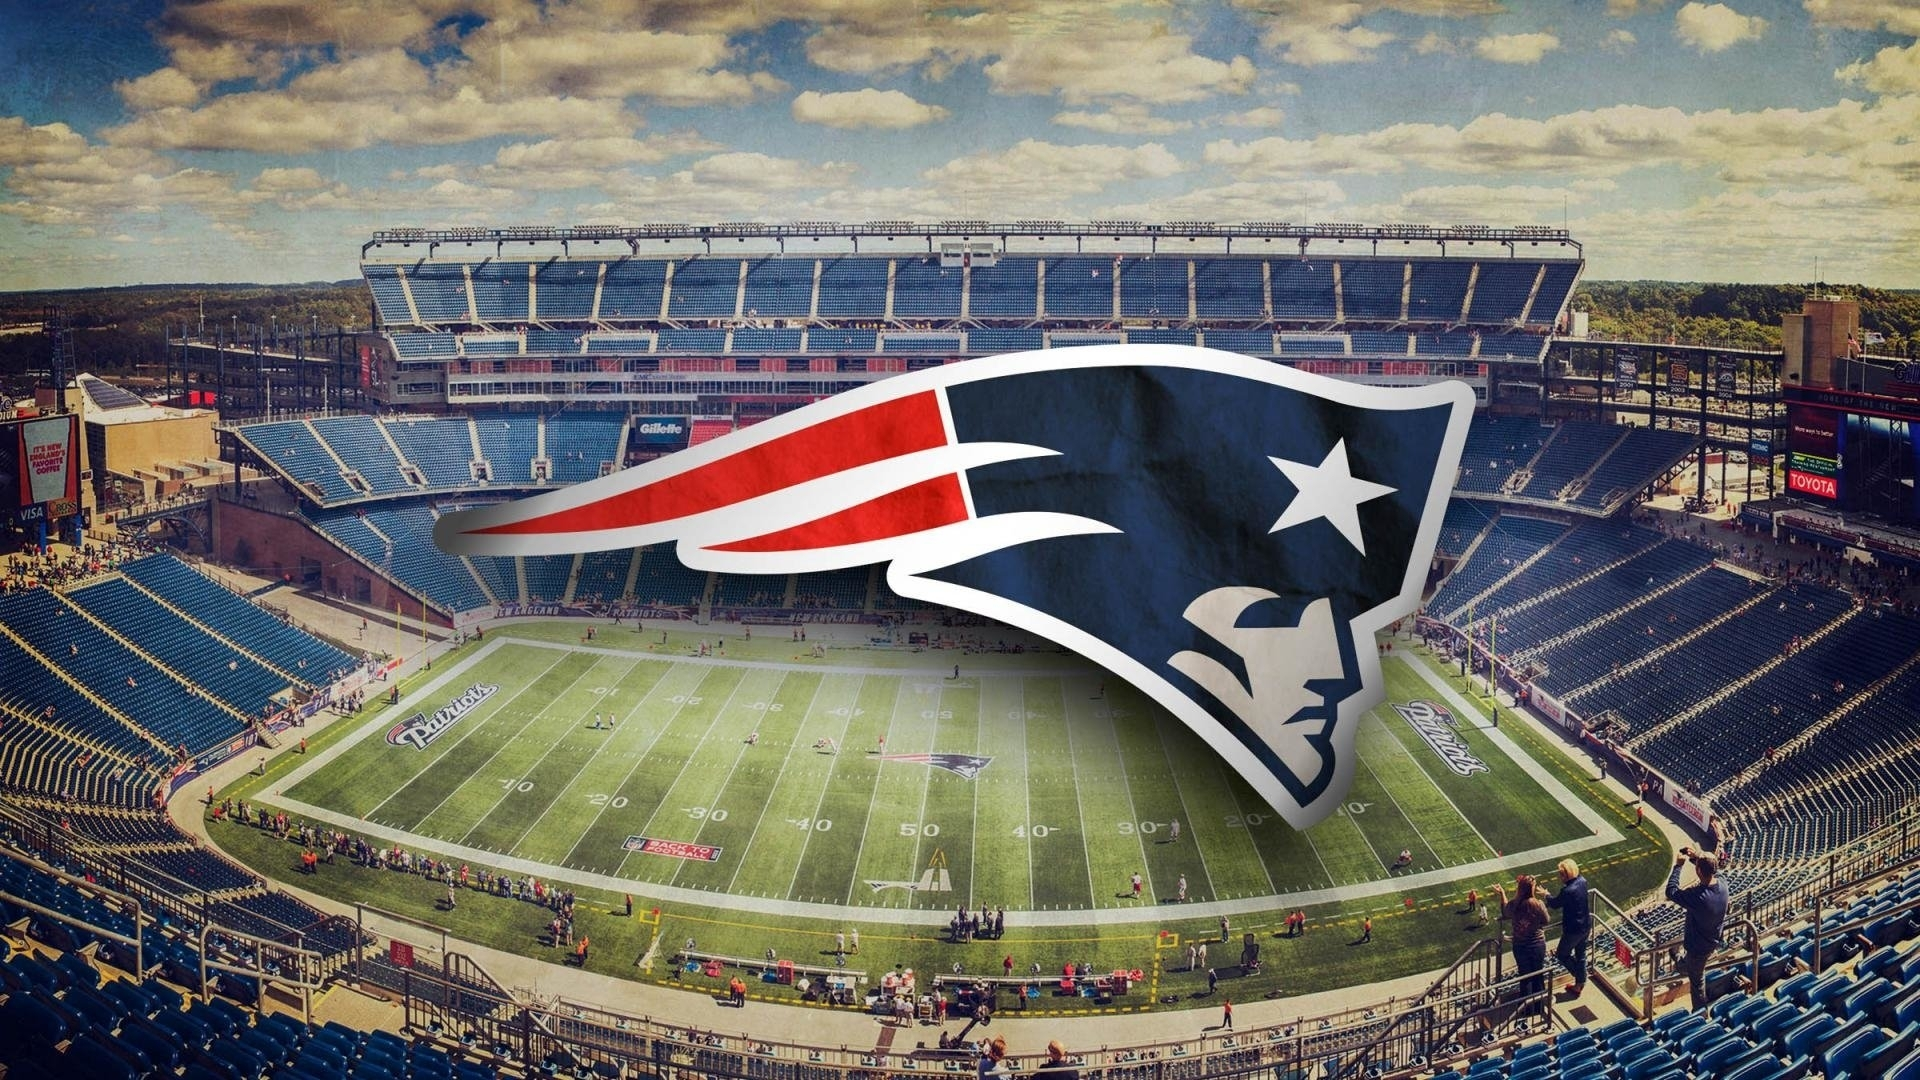 new england patriots stadium full hd fond d'écran and arrière-plan